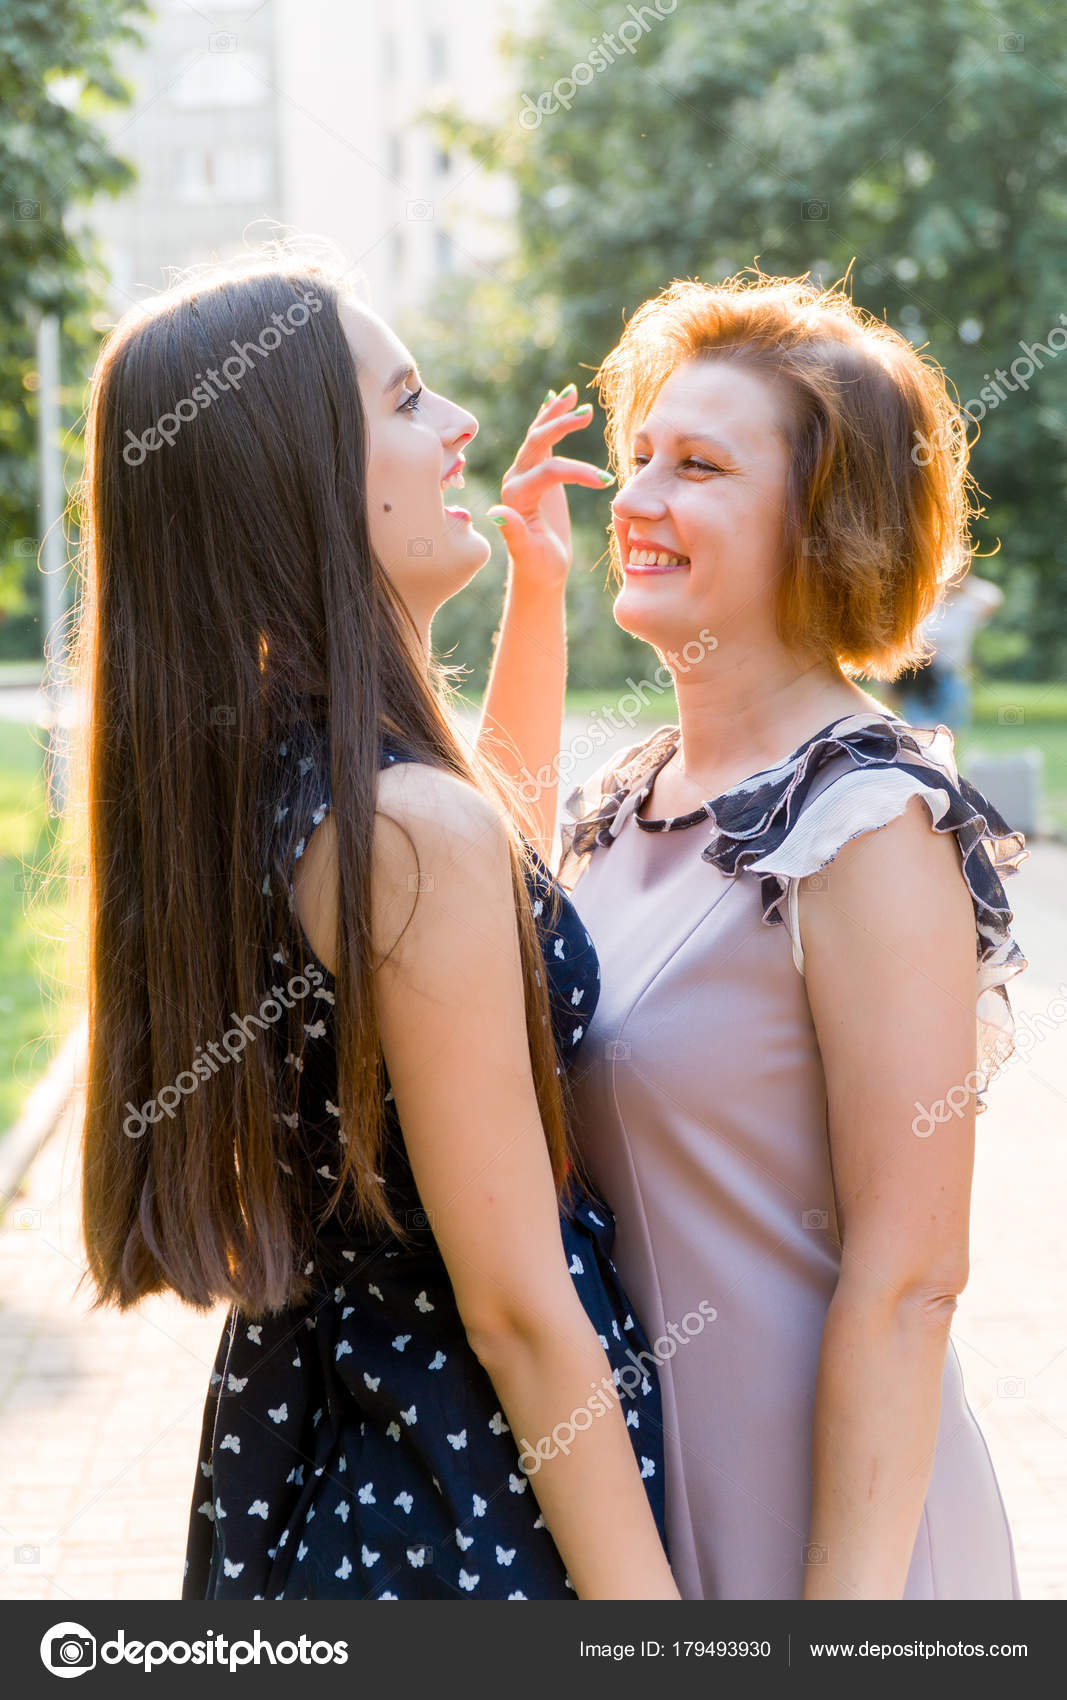 Closeup Portrait Of Adult Daughter And Mother Outdoors Pretty Brunette And Her Mom Are Looking At The Camera In The Park In Summer Photo By Sashr